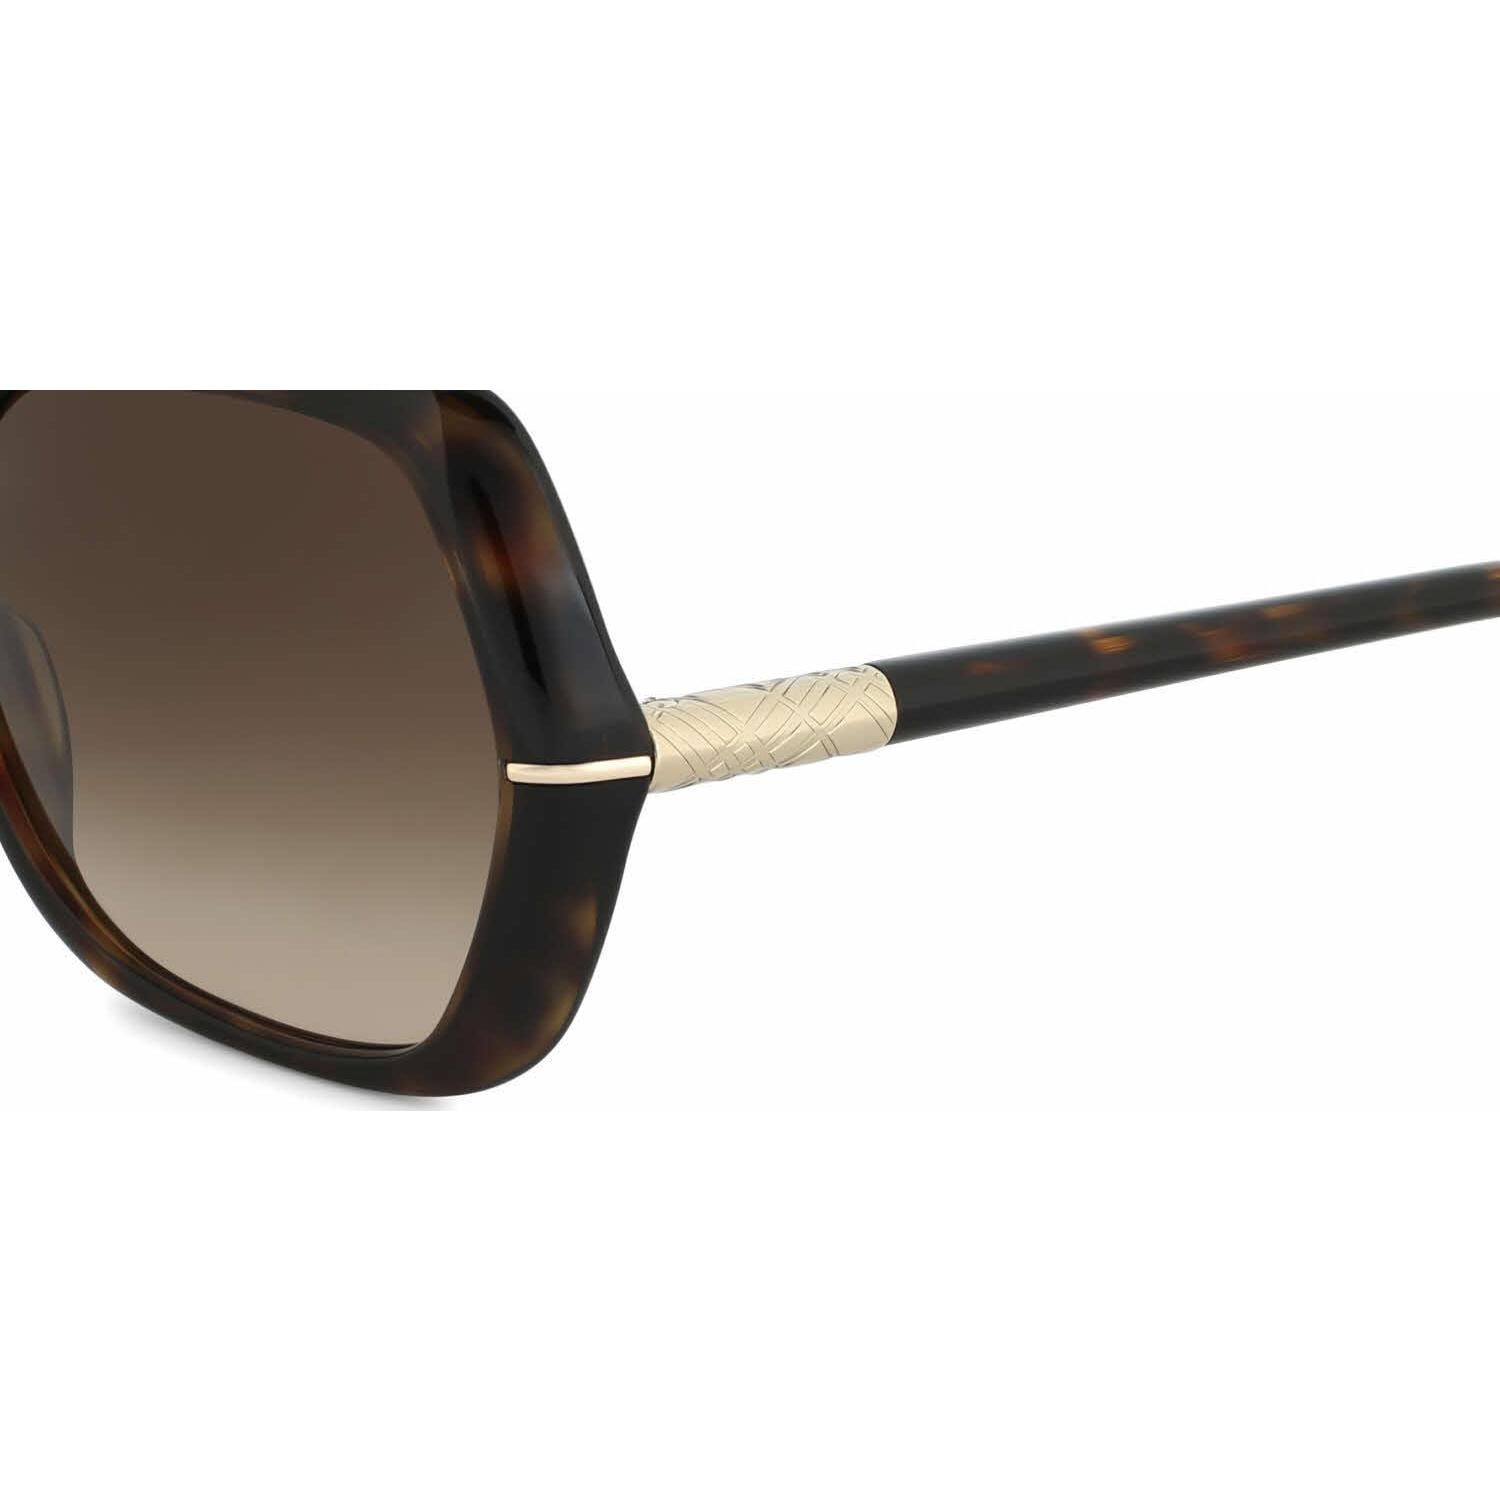 edf8a814f63a Shop Burberry Women BE4107 300213 Havana Plastic Irregular Sunglasses -  Free Shipping Today - Overstock - 13318771